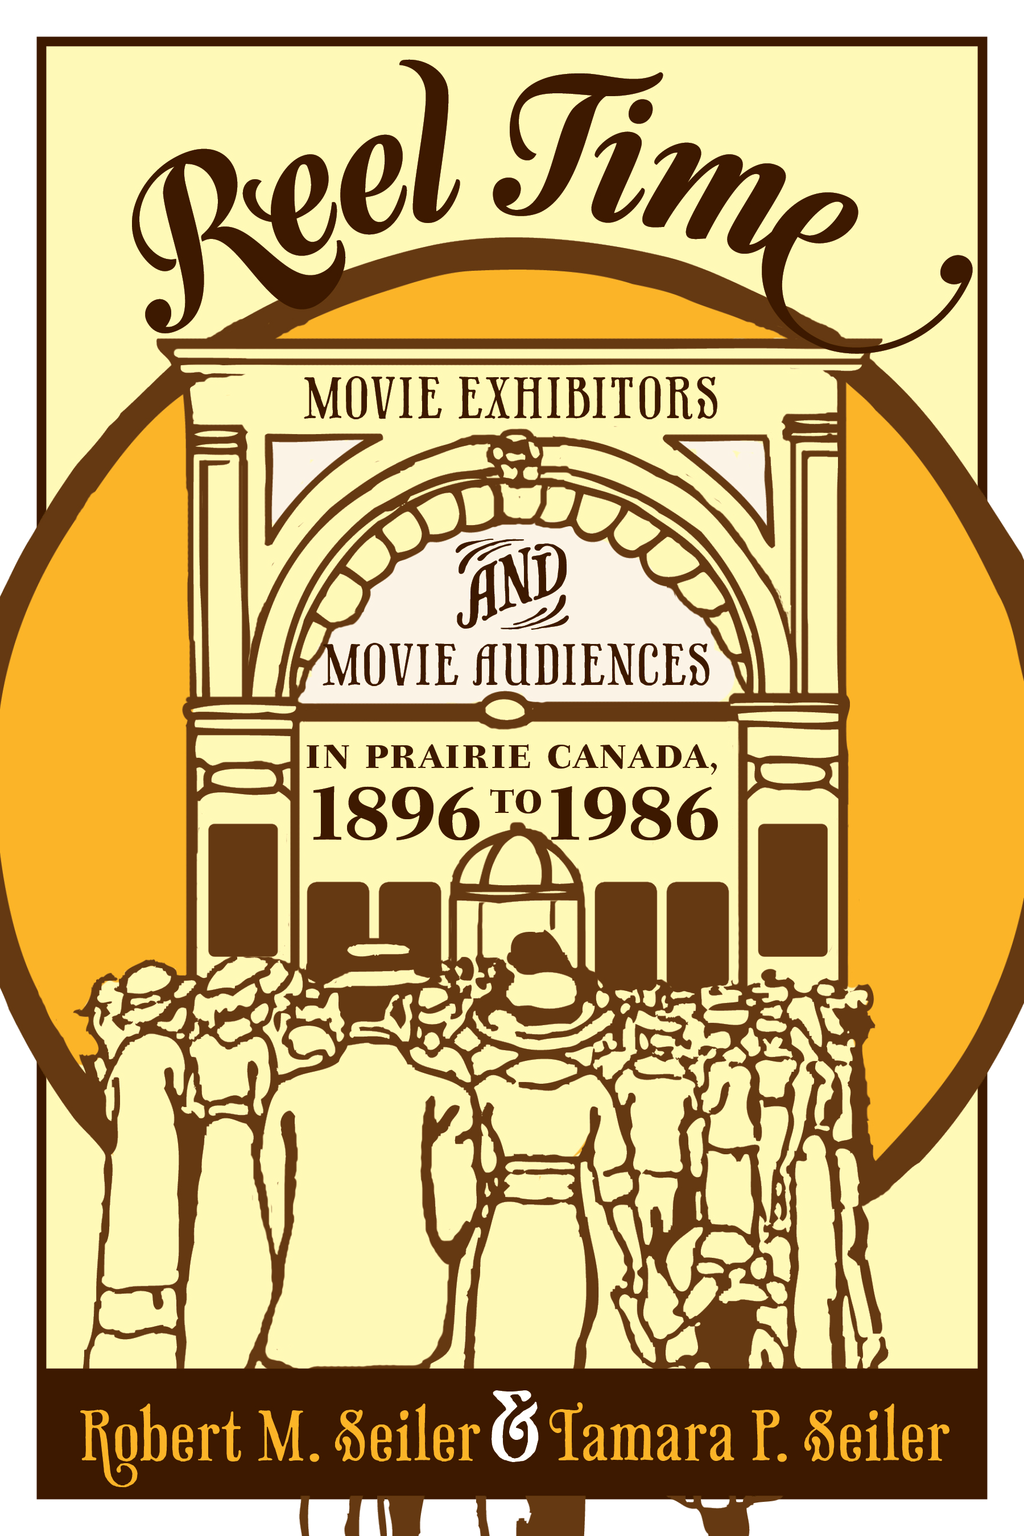 Reel Time Movie Exhibitors and Movie Audiences in Prairie Canada,  1896 to 1986